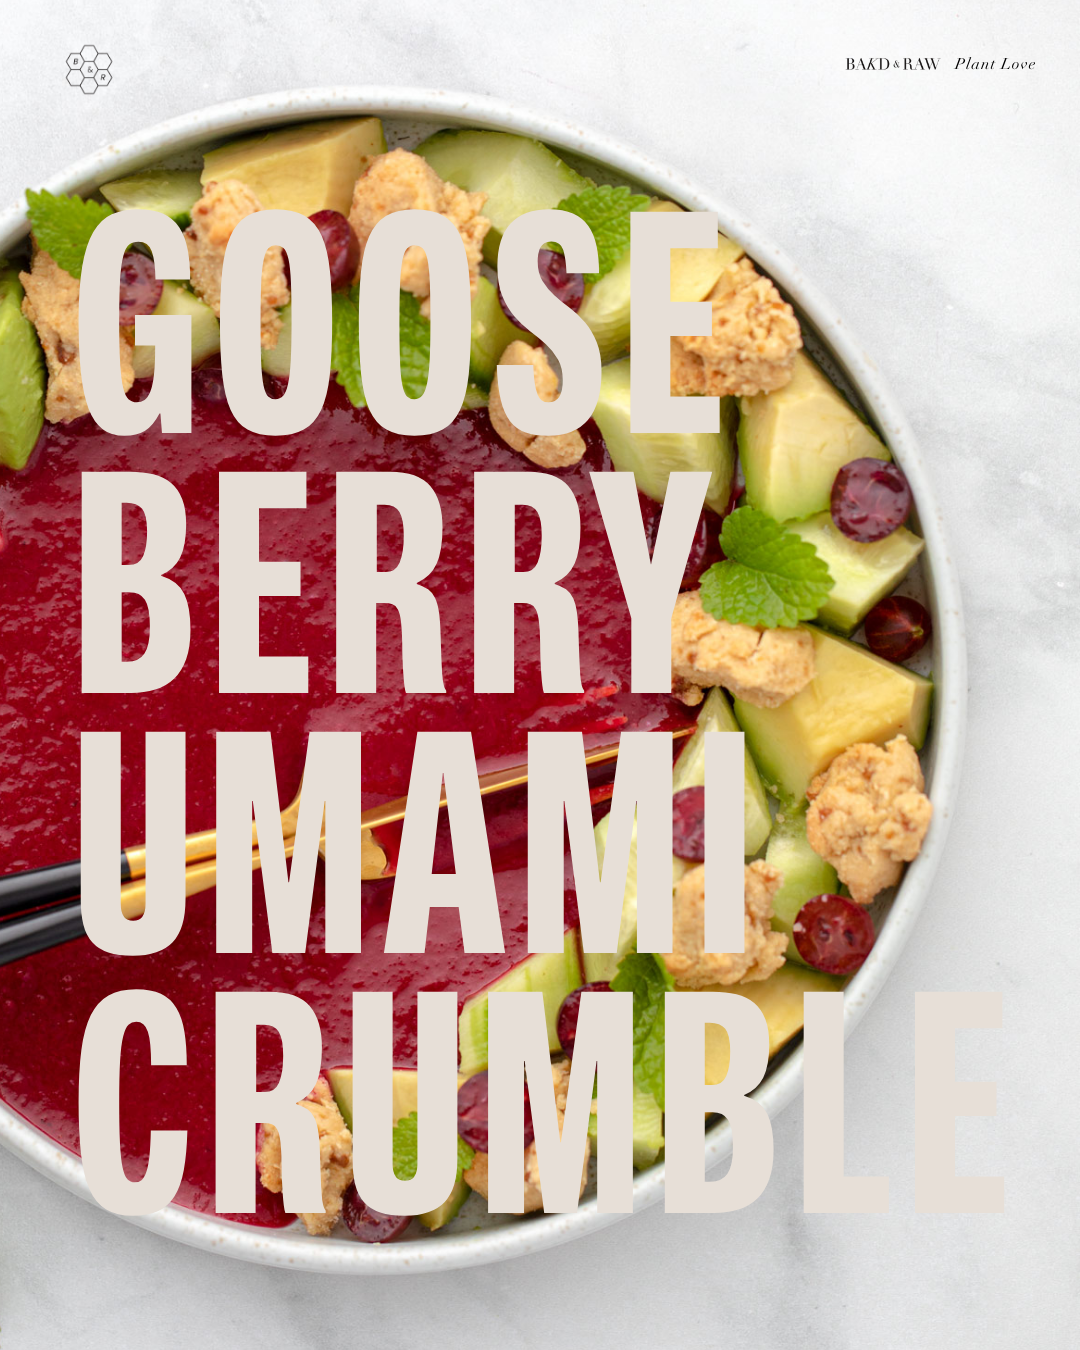 gooseberry-salad with umami crumble - seasonal dish of the month august by bakd&raw